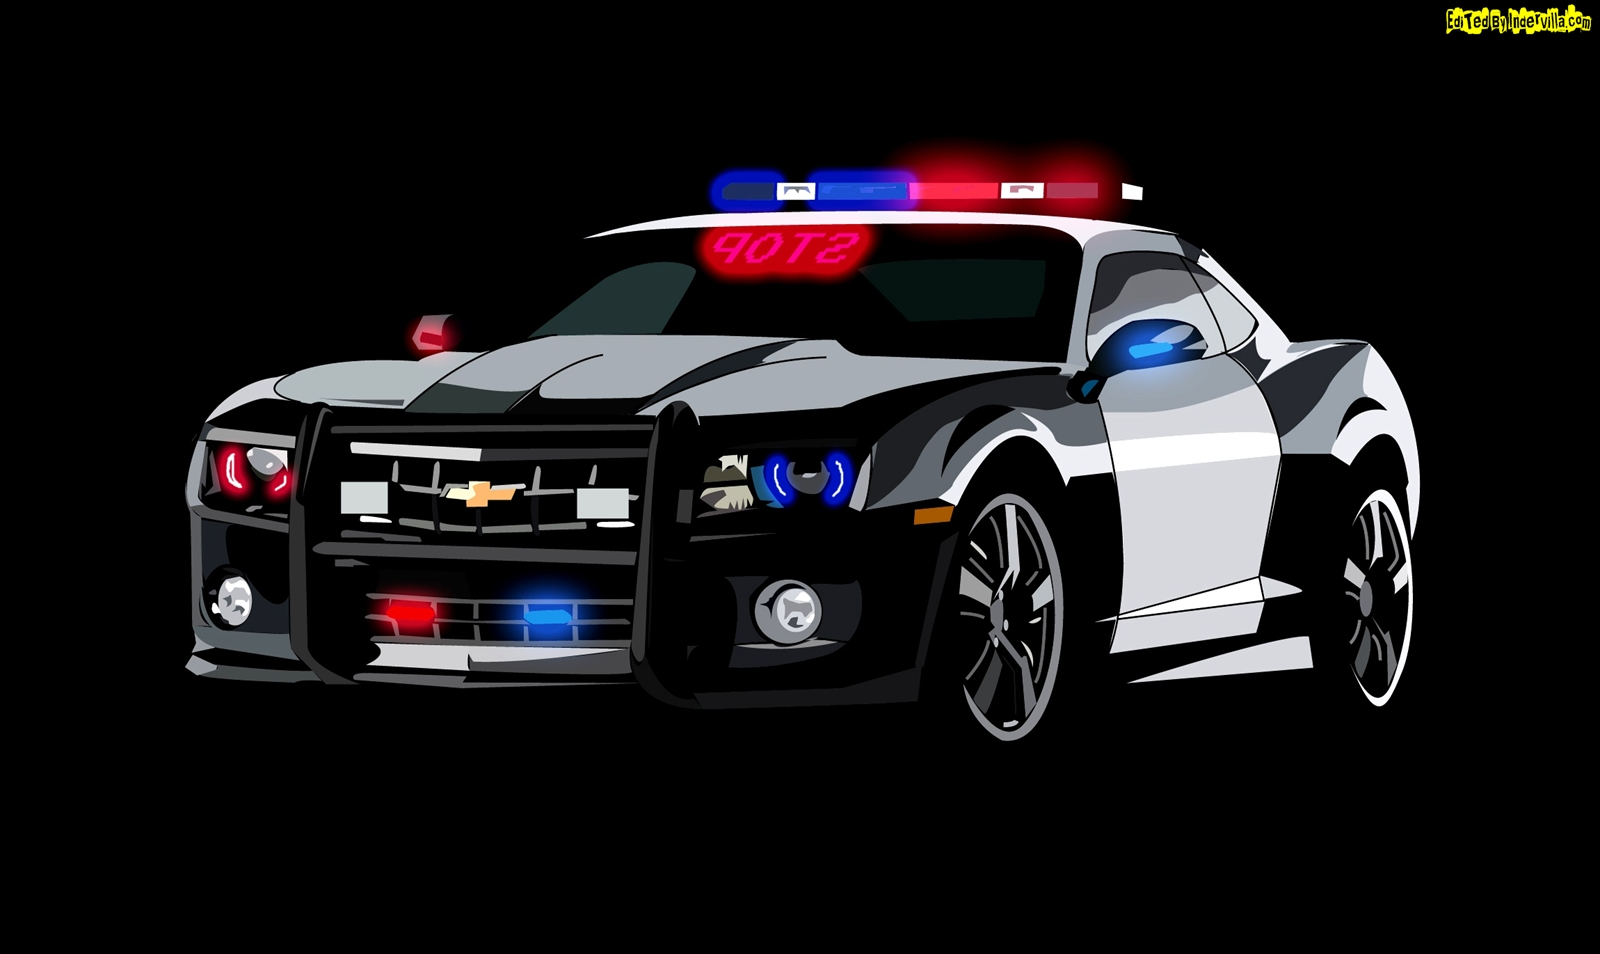 Police Car HD Wallpaper HD Wallpapers Source